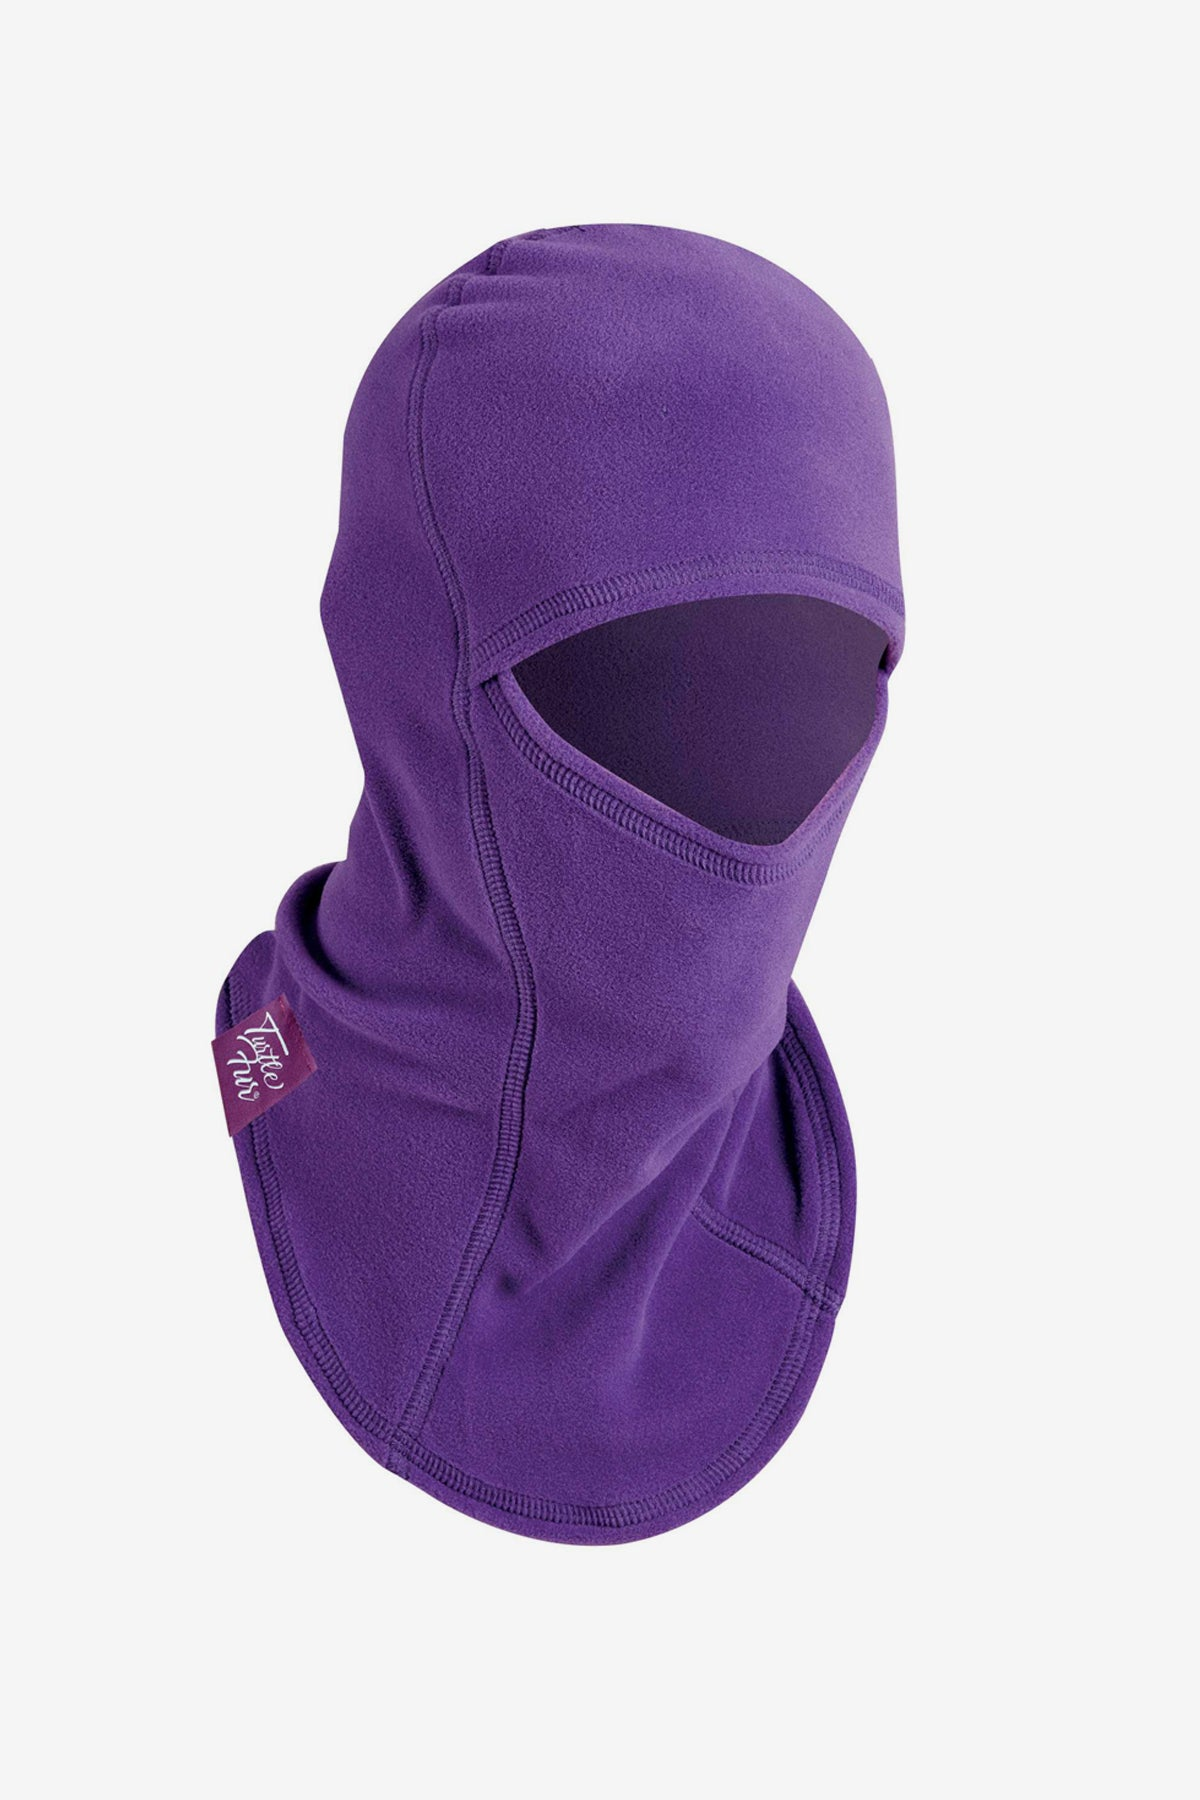 Turtle Fur Ninja Balaclava - Purple